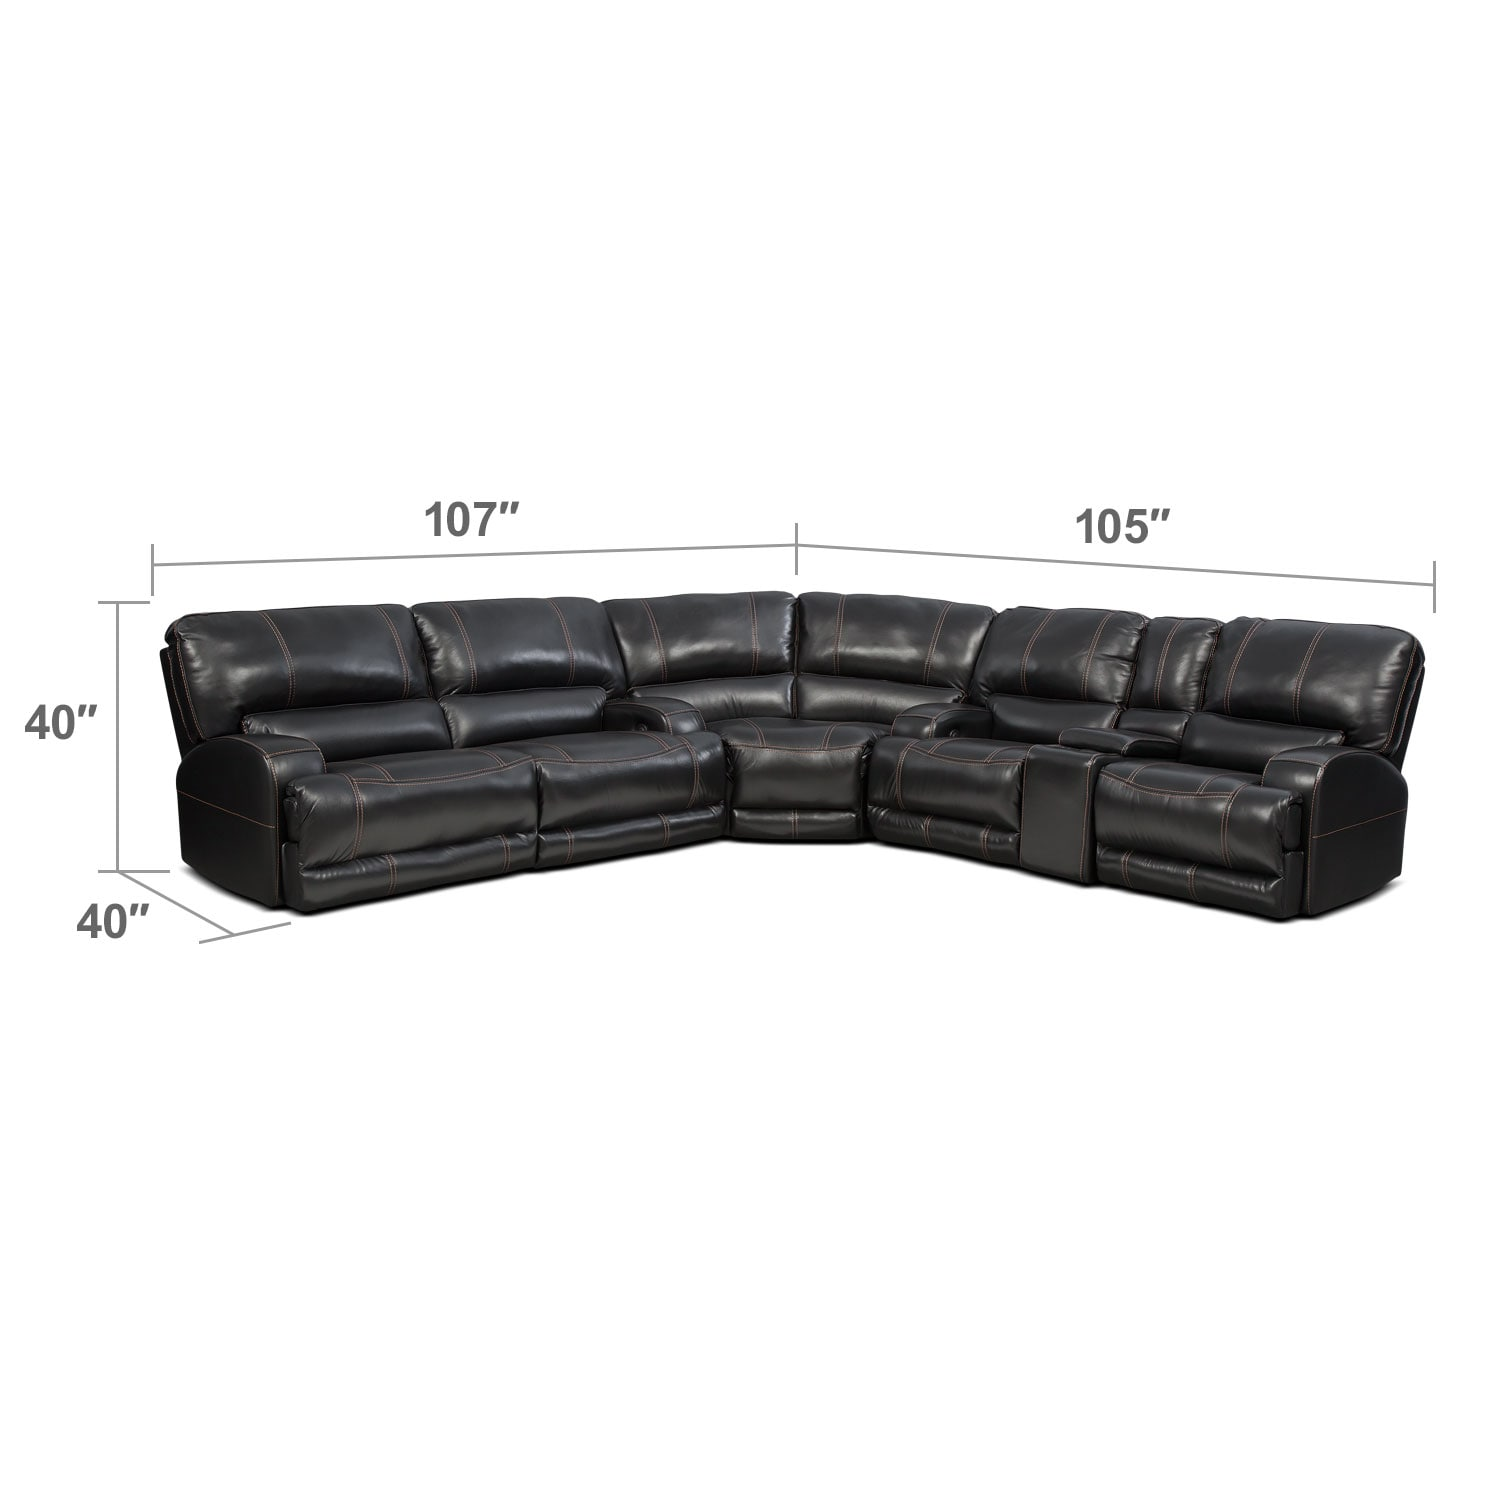 Living Room Furniture - Barton 3-Piece Power Reclining Sectional with 1 Console - Black